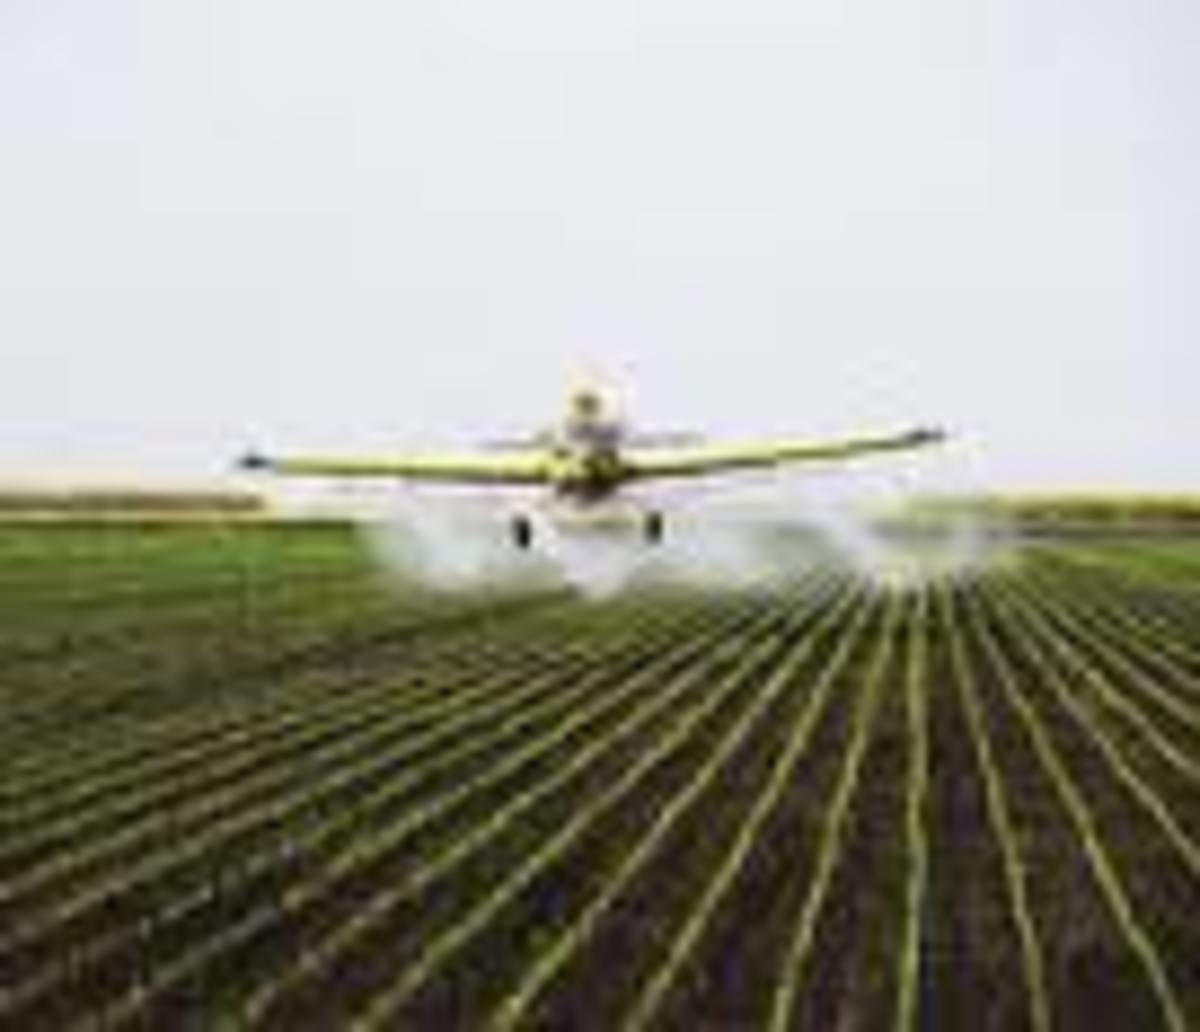 Poison sprayed from the air drifts away from crops on wind